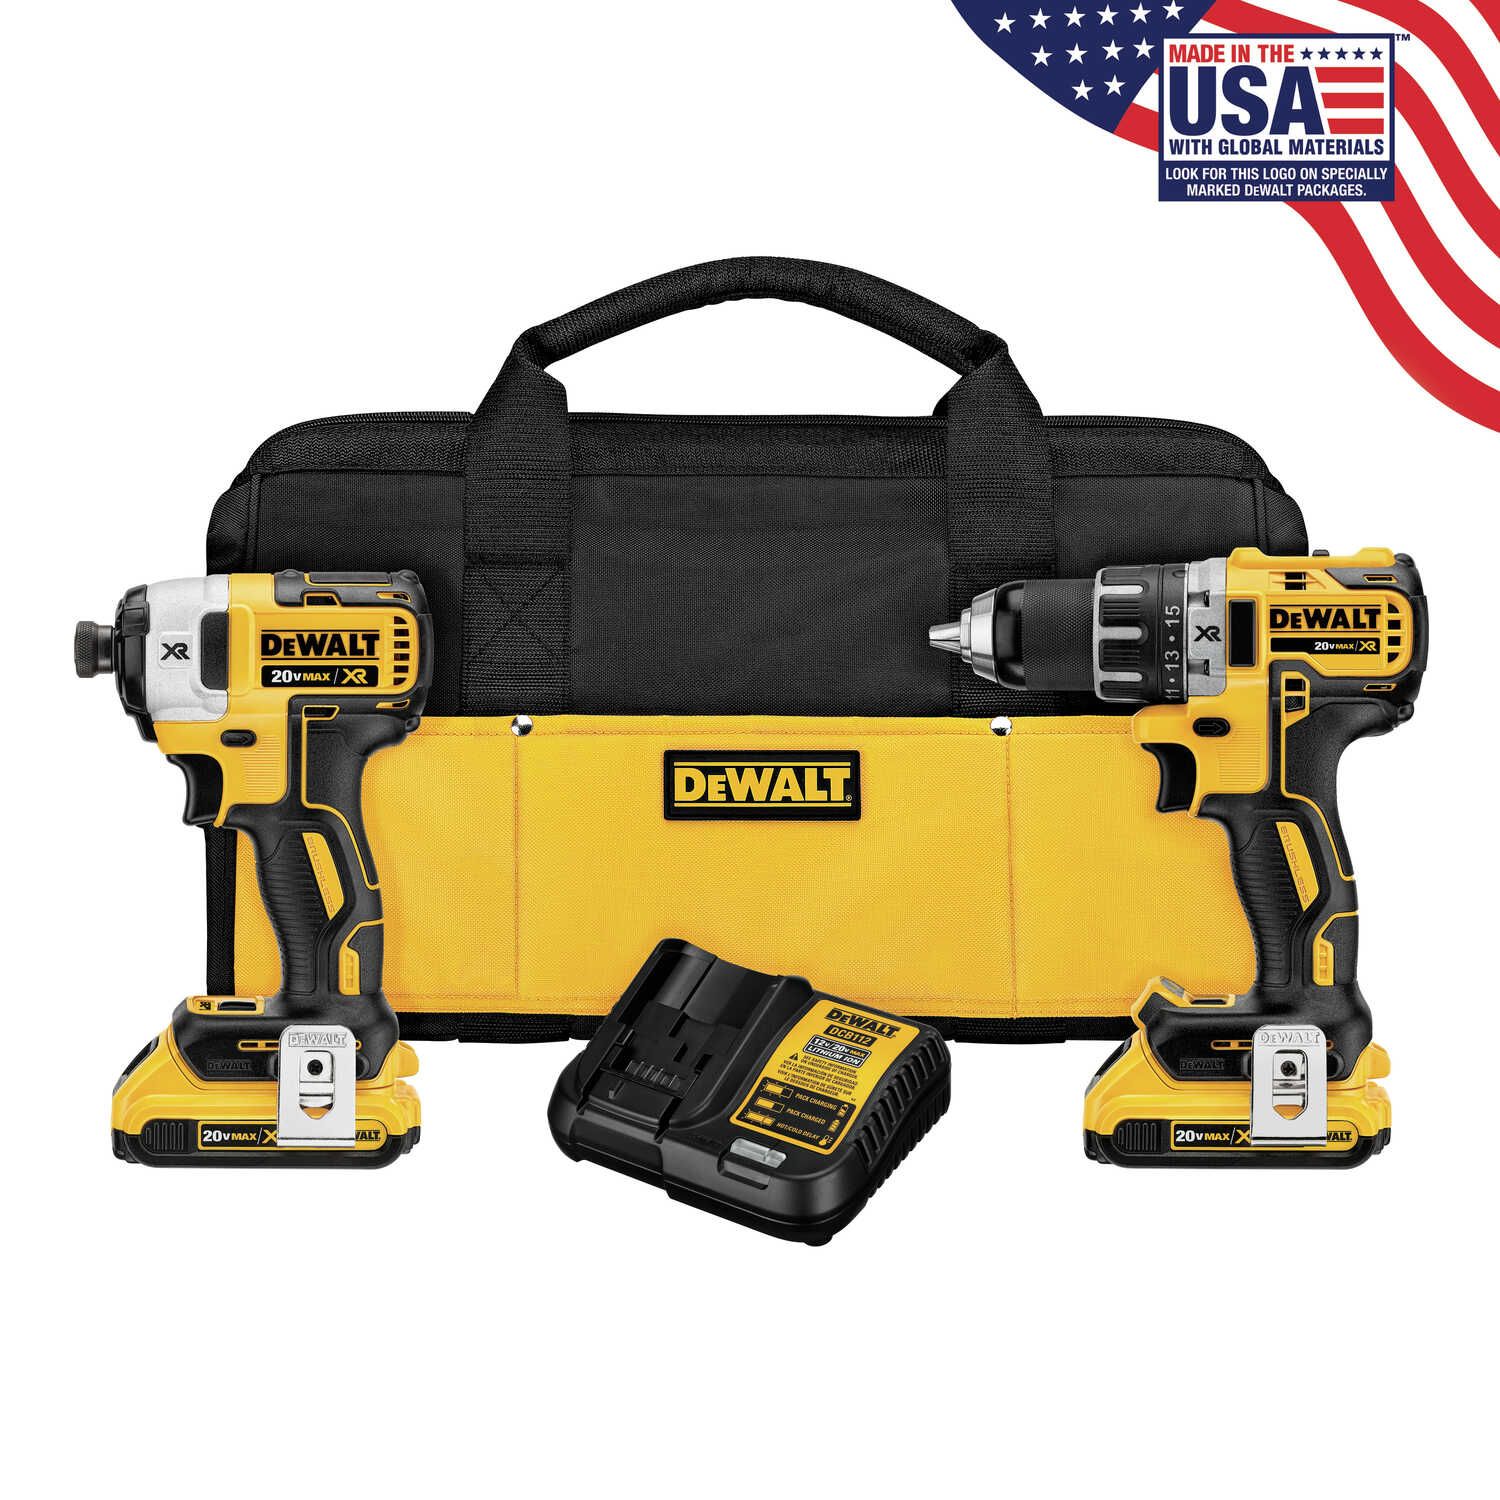 DeWalt  XR  Cordless  2 tools Compact Drill and Impact Driver Kit  20 volts Brushless